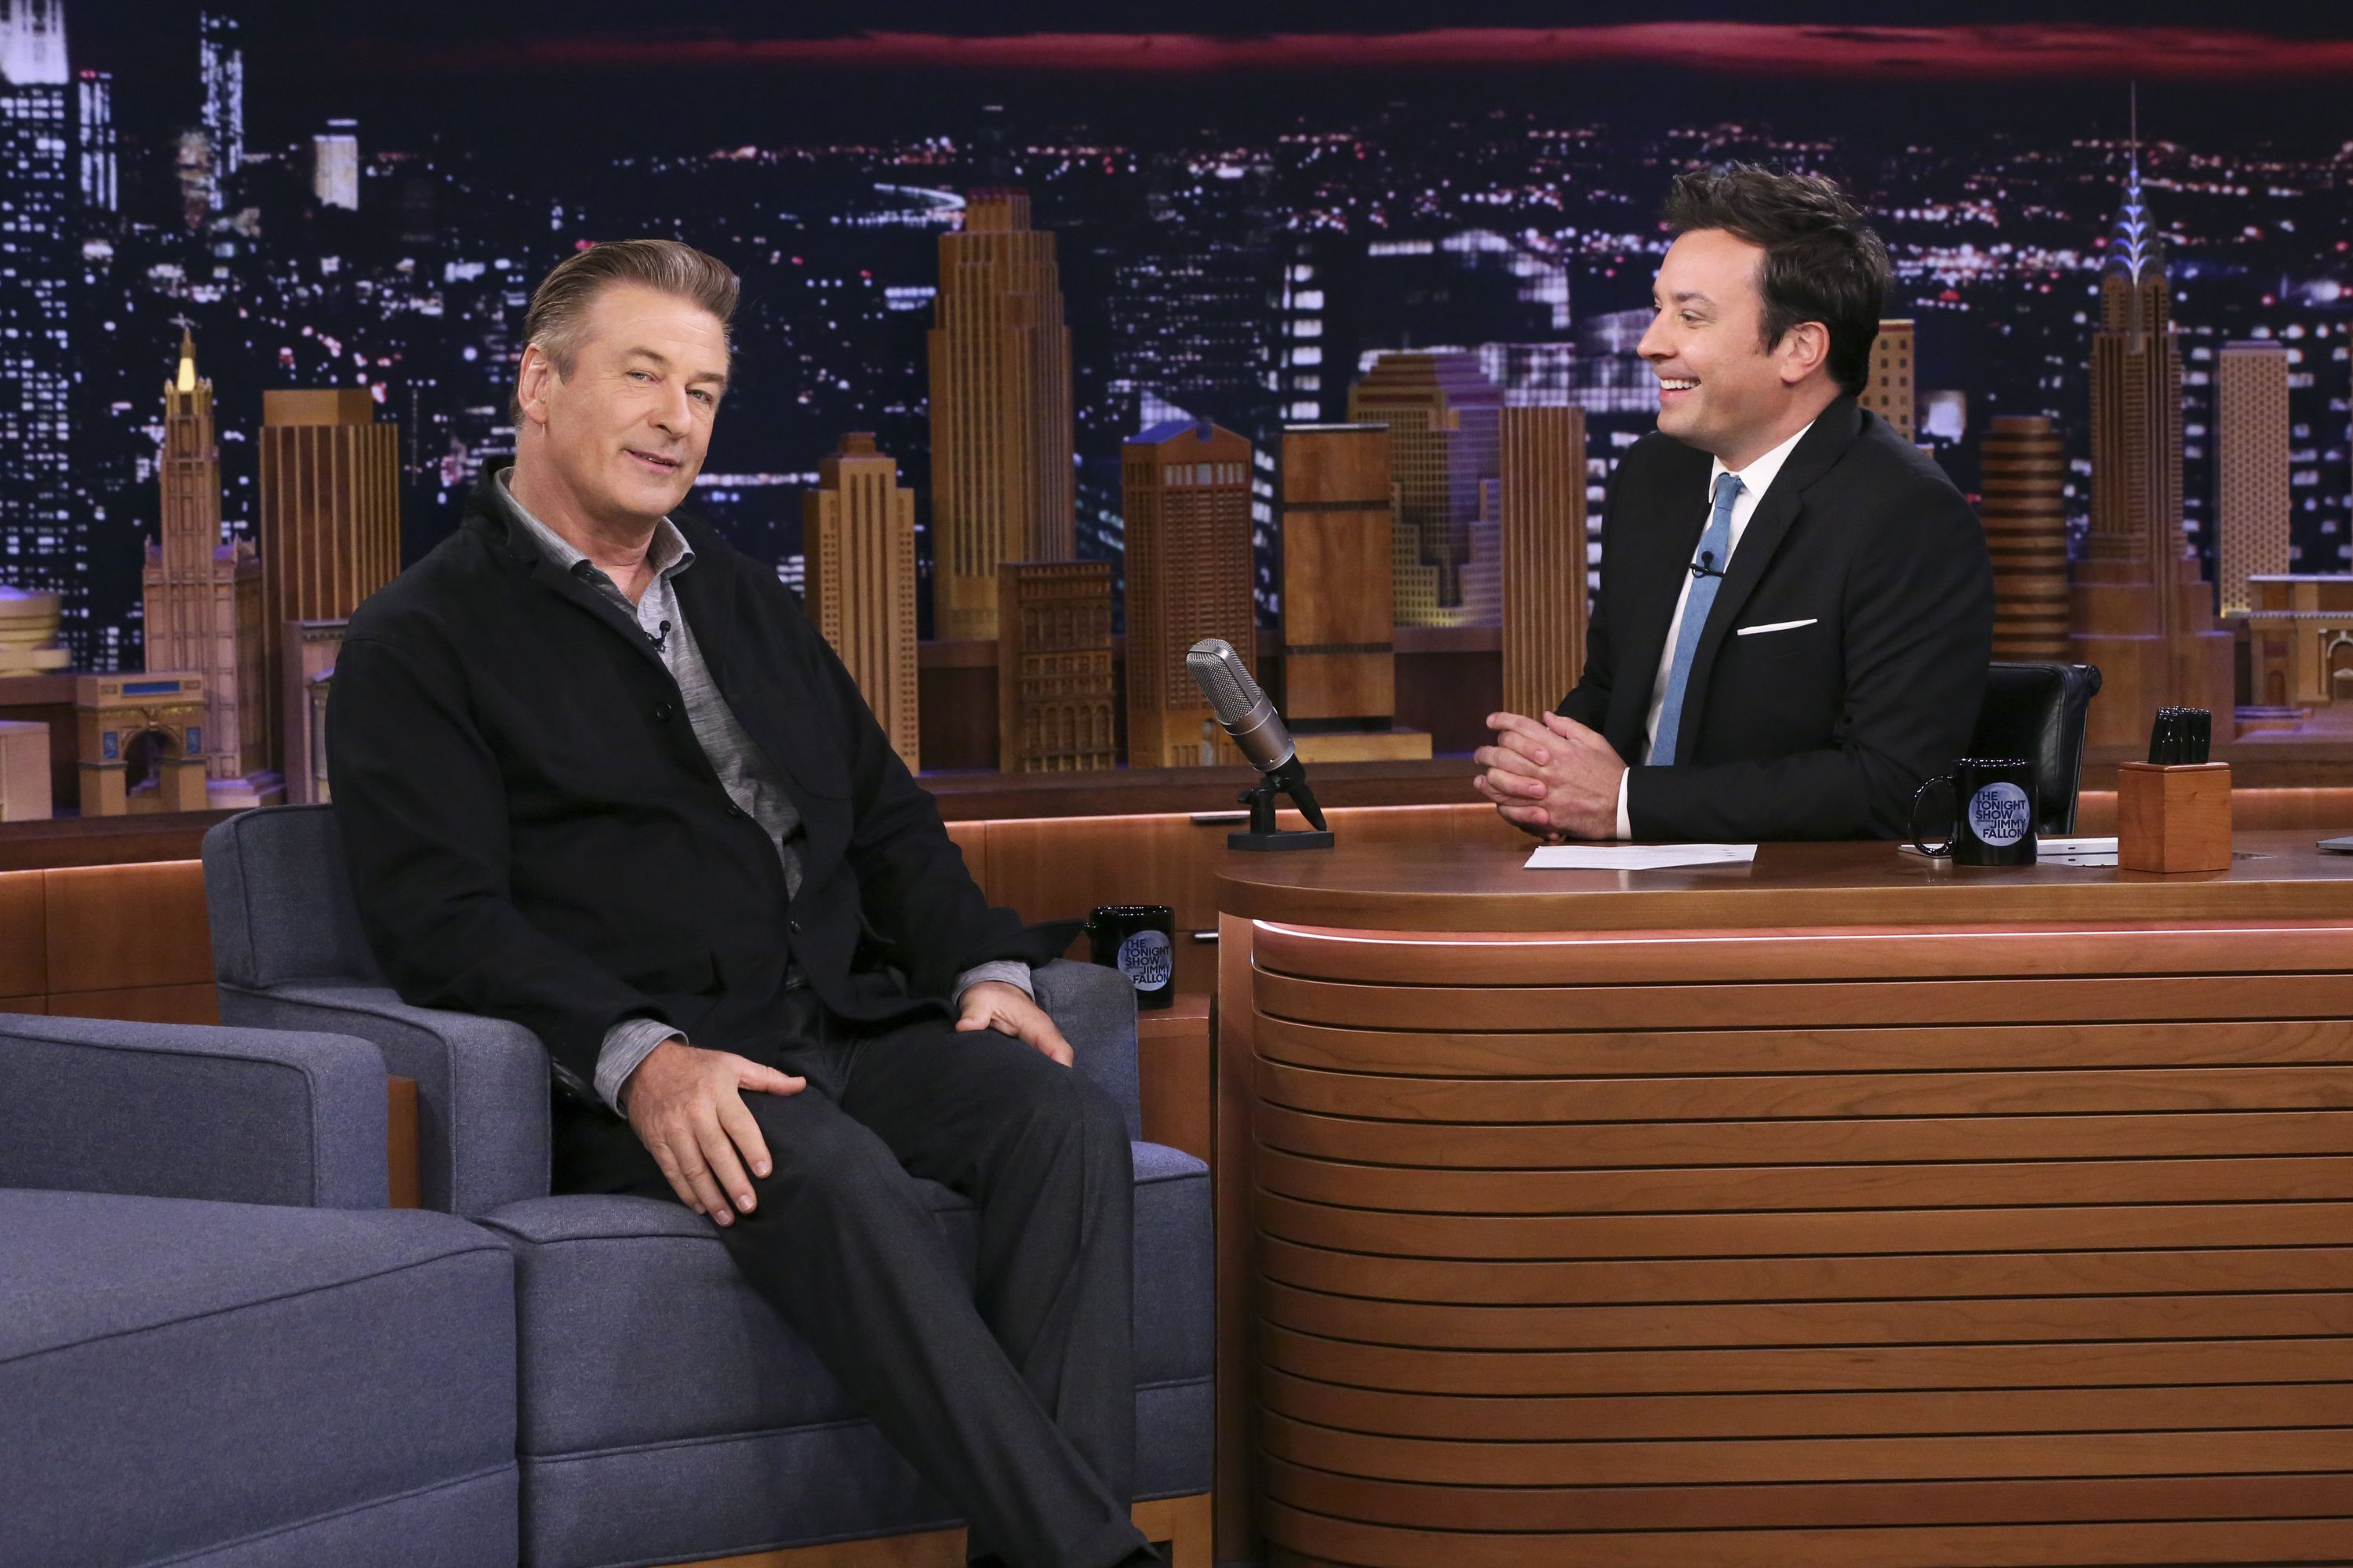 Alec Baldwin Just Showed Off His Weight Loss by Dropping His Pants on Live TV